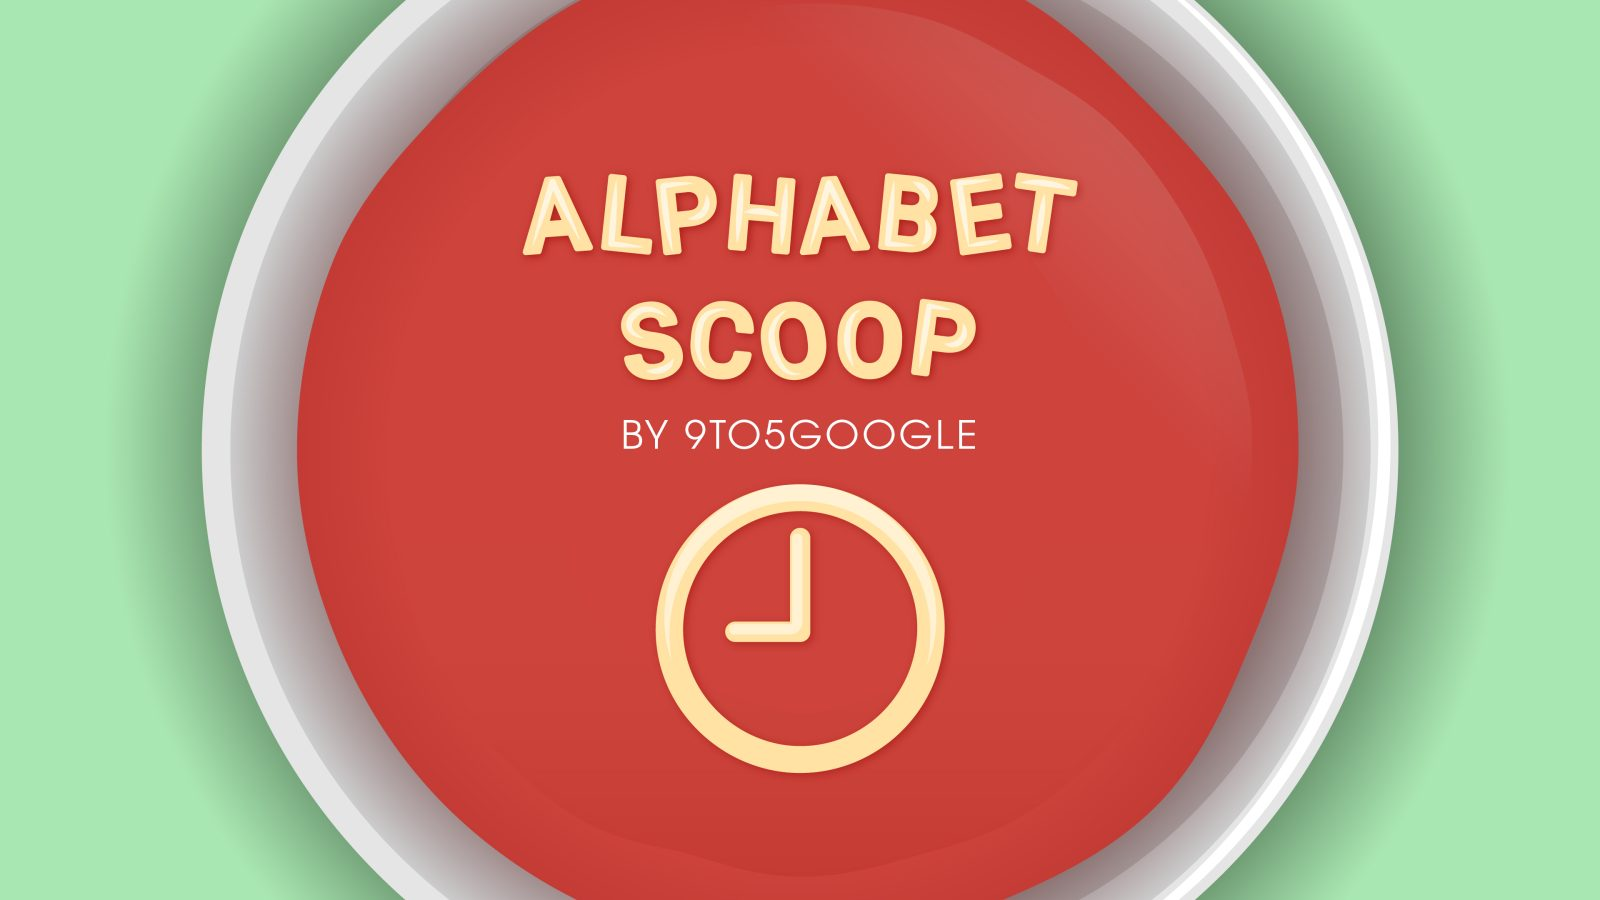 Alphabet Scoop 079: First Pixel 4a rumors, Pixel 4 sales, and a Fuchsia tablet?